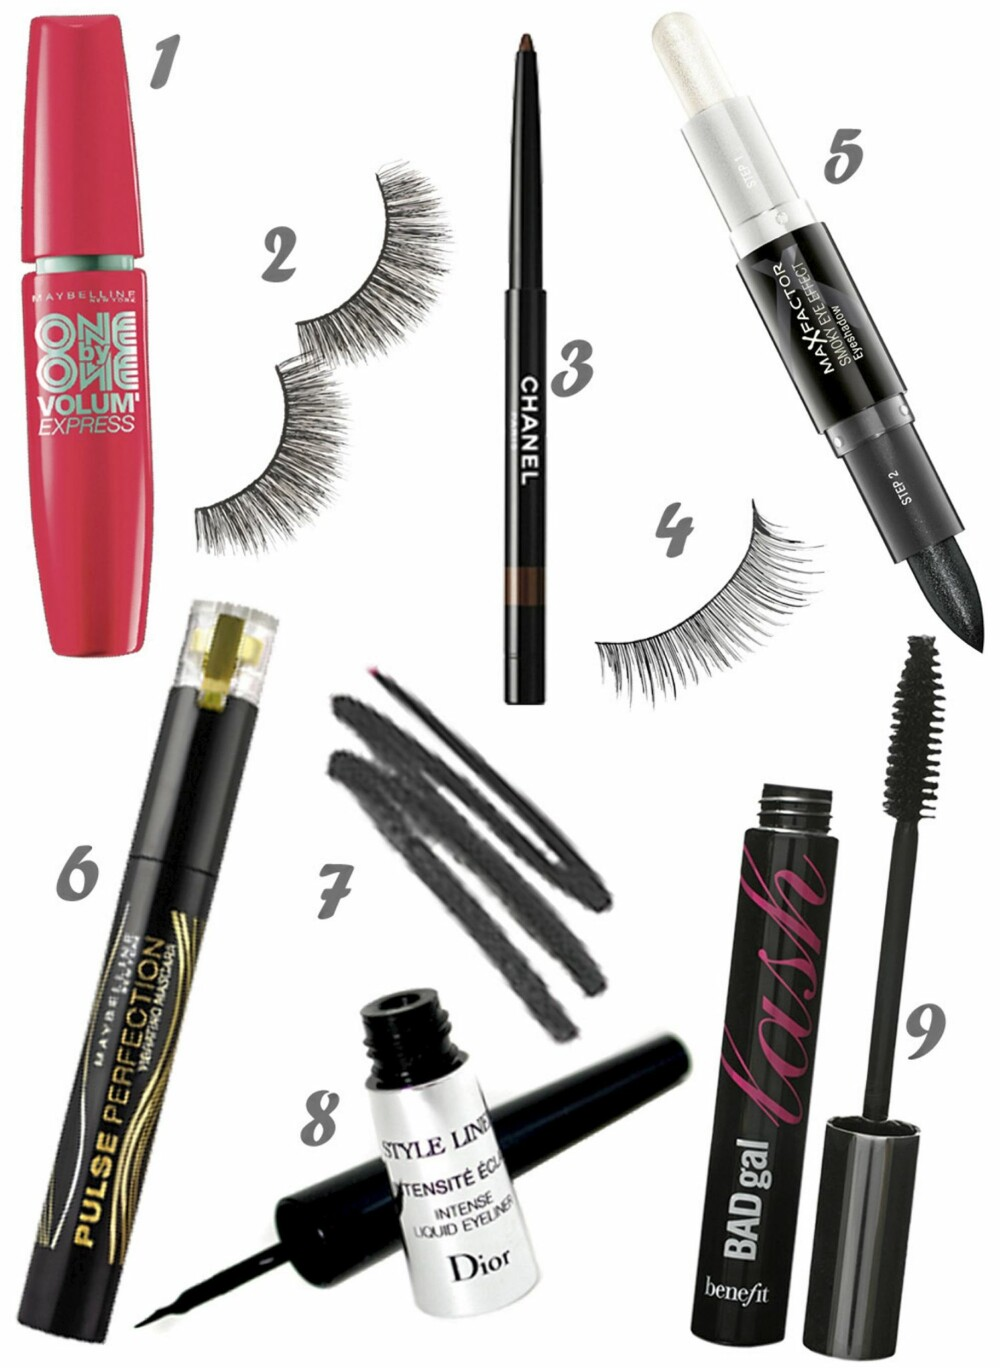 ETTER NUMMER: 1. Maybelline One by one volume express (kr 179), 2. Eylure Double lashes (kr 63), 3. Chanel Longlasting eyeliner (kr 210), 4. Make Up Store eyelashes small (kr 165), 5. Max factor Smoky eye effect eyeshadow (kr 115), 6. Maybelline Pulse perfection (kr 179), 7. Bobbi brown creamy eye pencil (kr 185), 8. Dior Style liner (kr 280), 9. Benefit Bad gal lash mascara (kr 145).